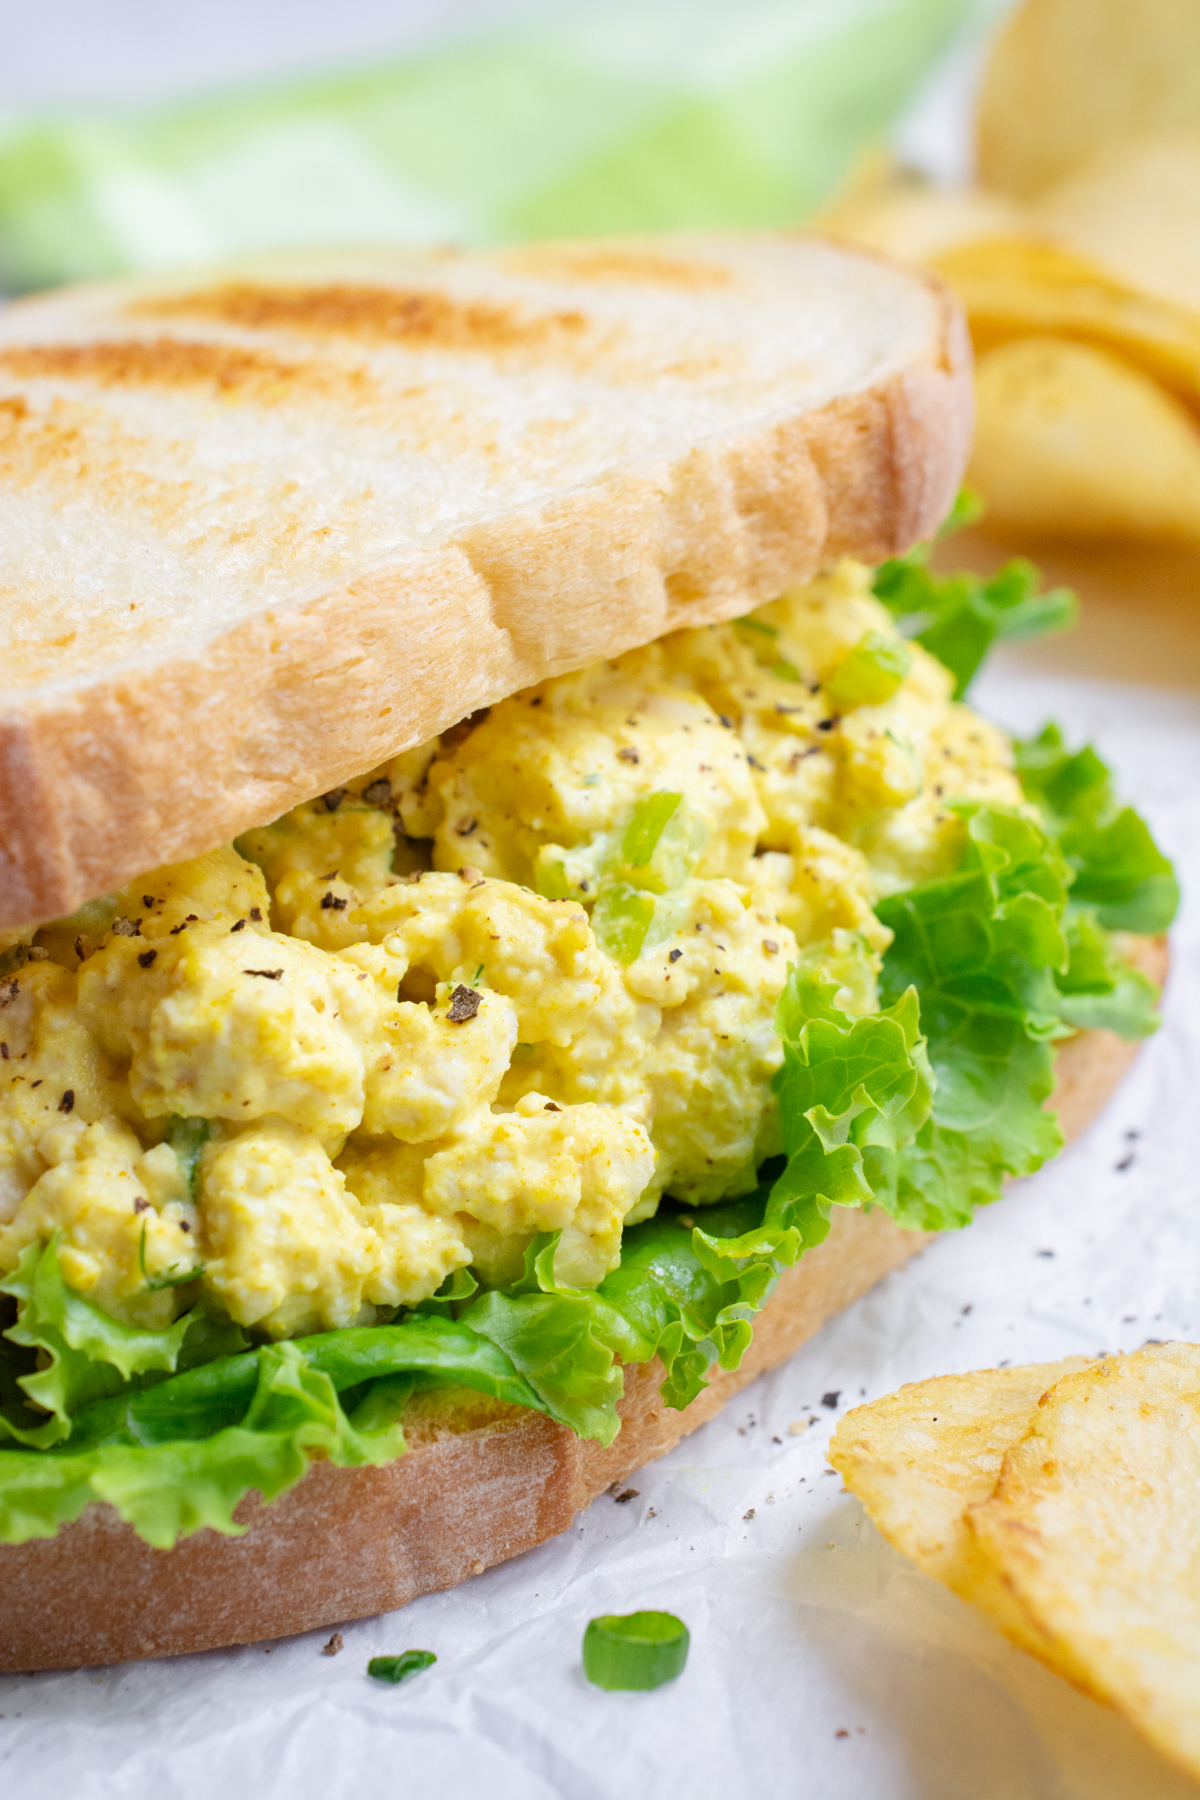 Vegan egg salad sandwich made with tofu.